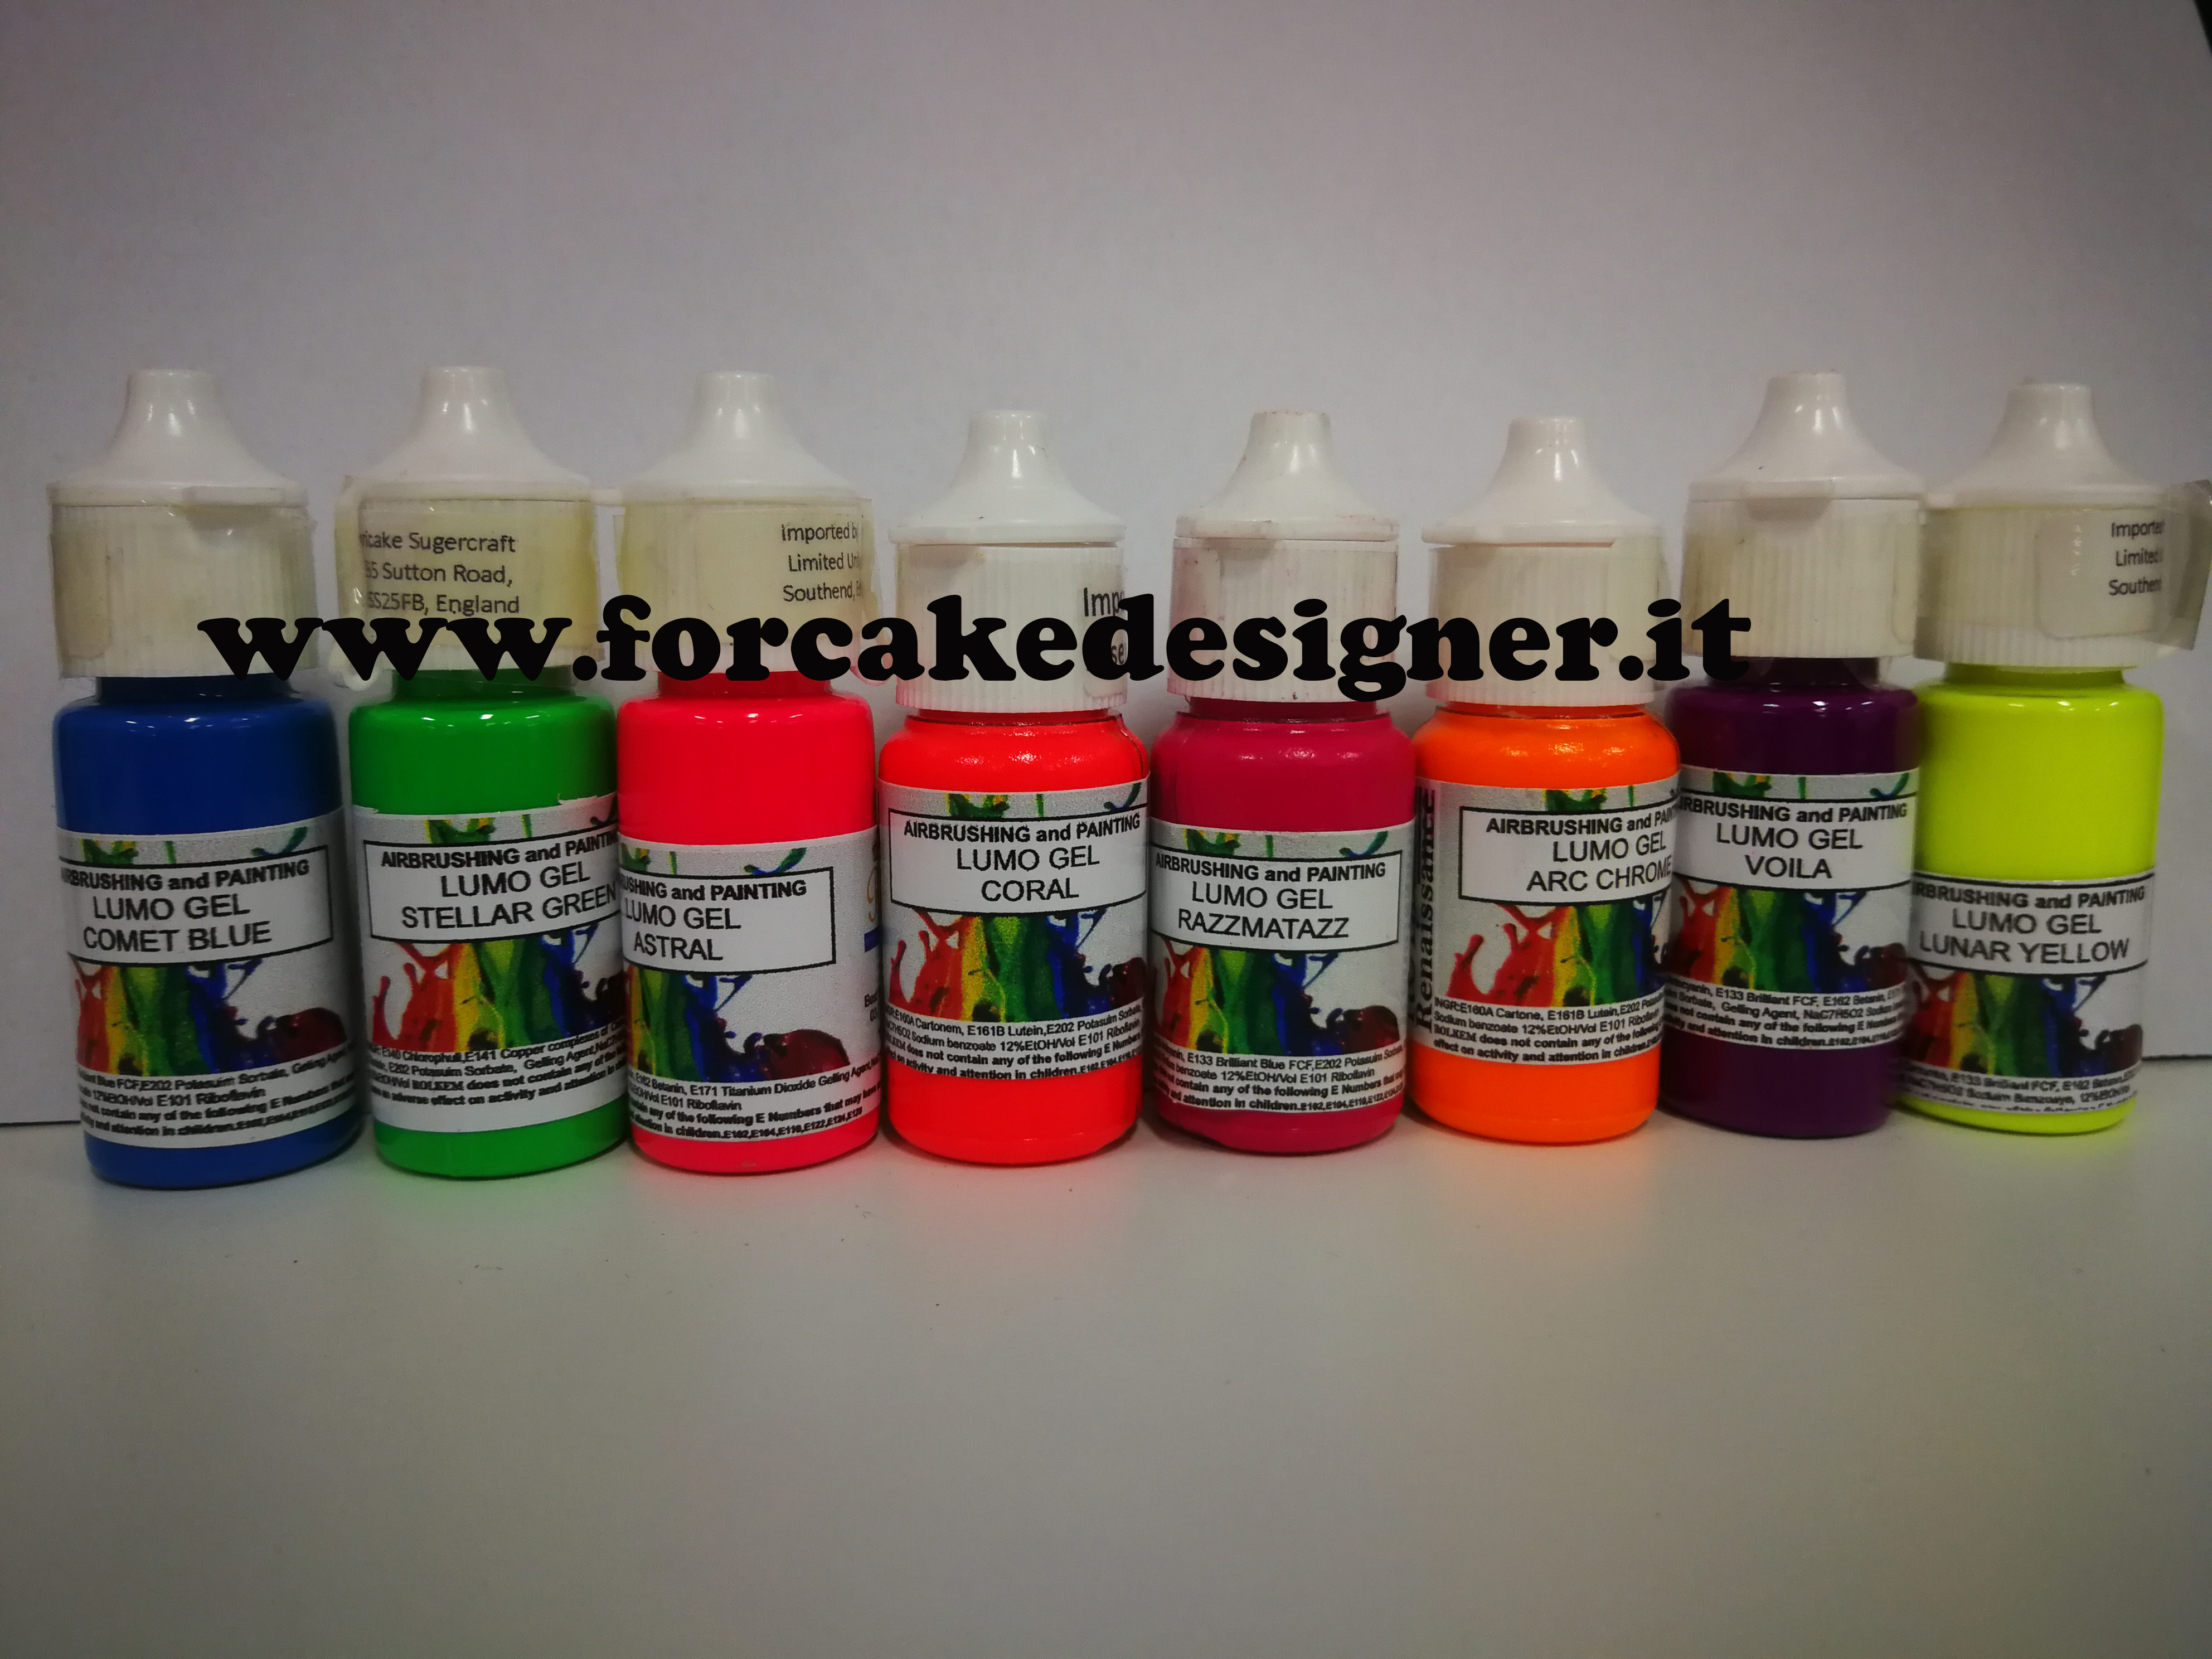 Foto: Rolkem - Lumo Gel Airbrushing and painting Astral 15 ml